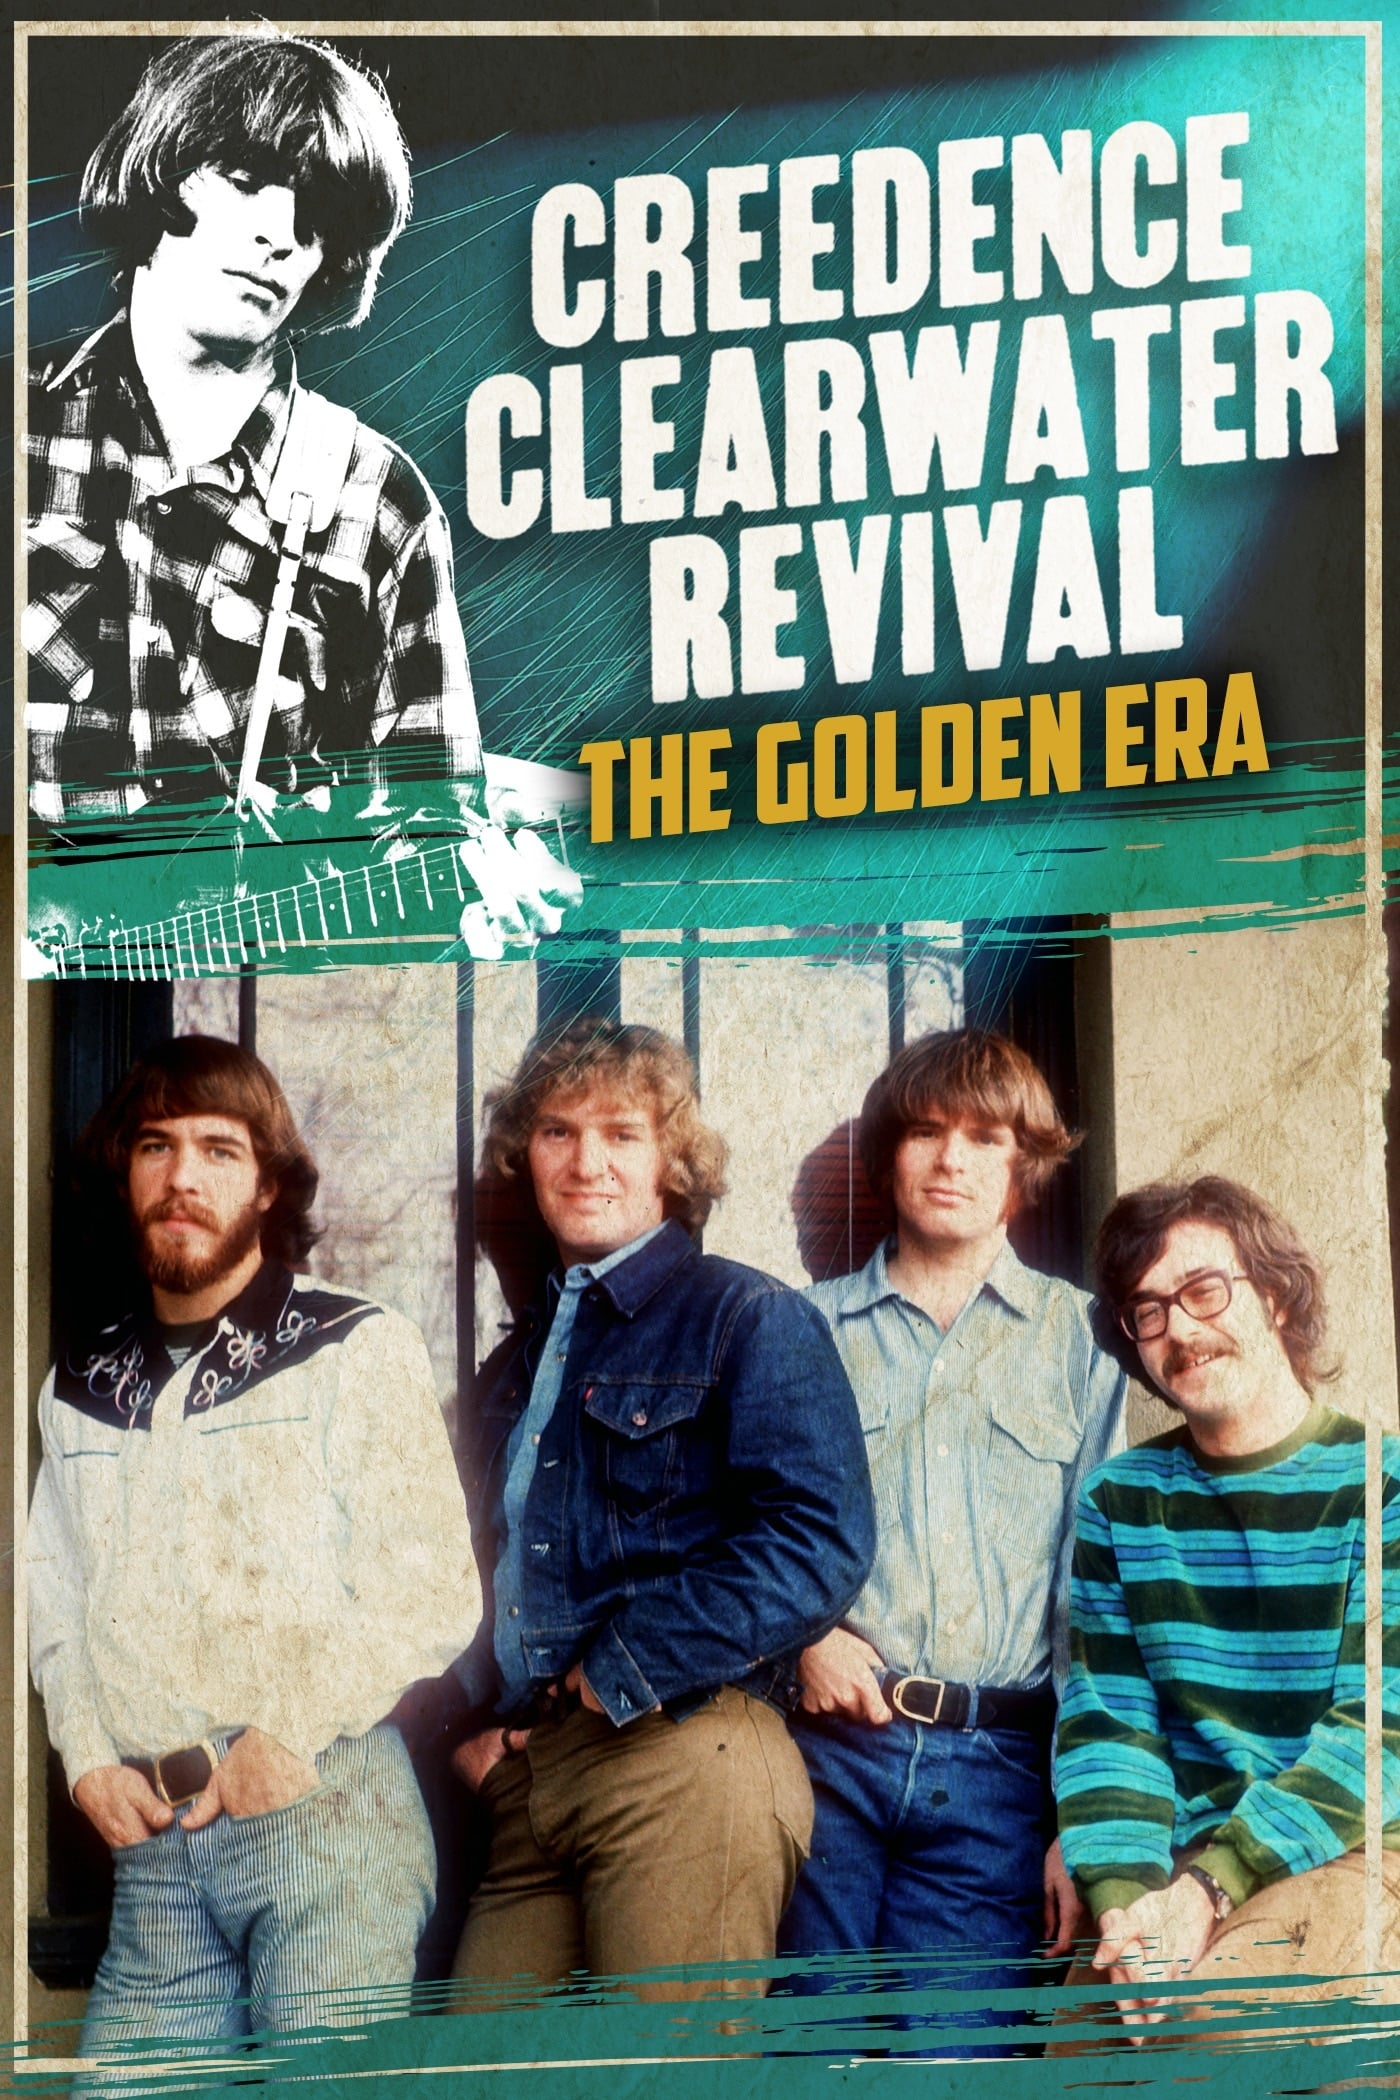 Creedence Clearwater Revival: The Golden Era on FREECABLE TV